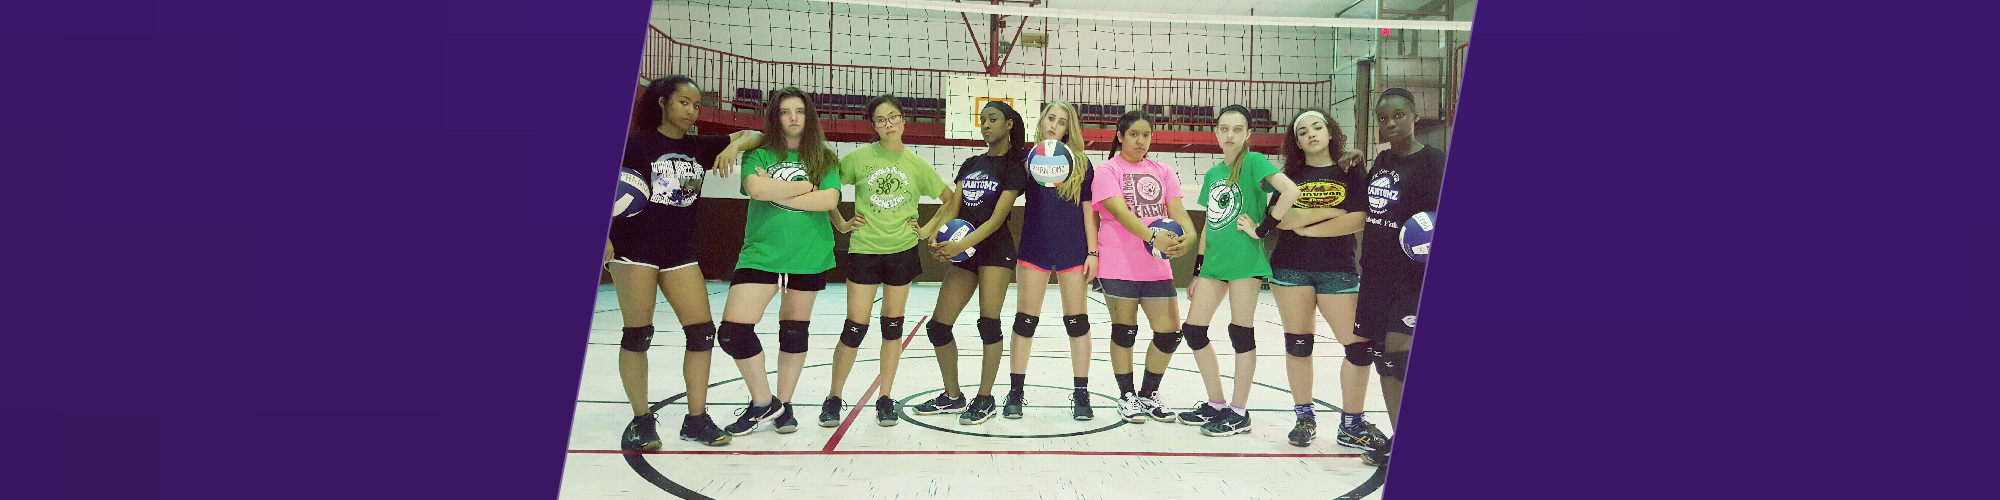 Training classes volleyball club volleyball league arlington tx aiddatafo Choice Image